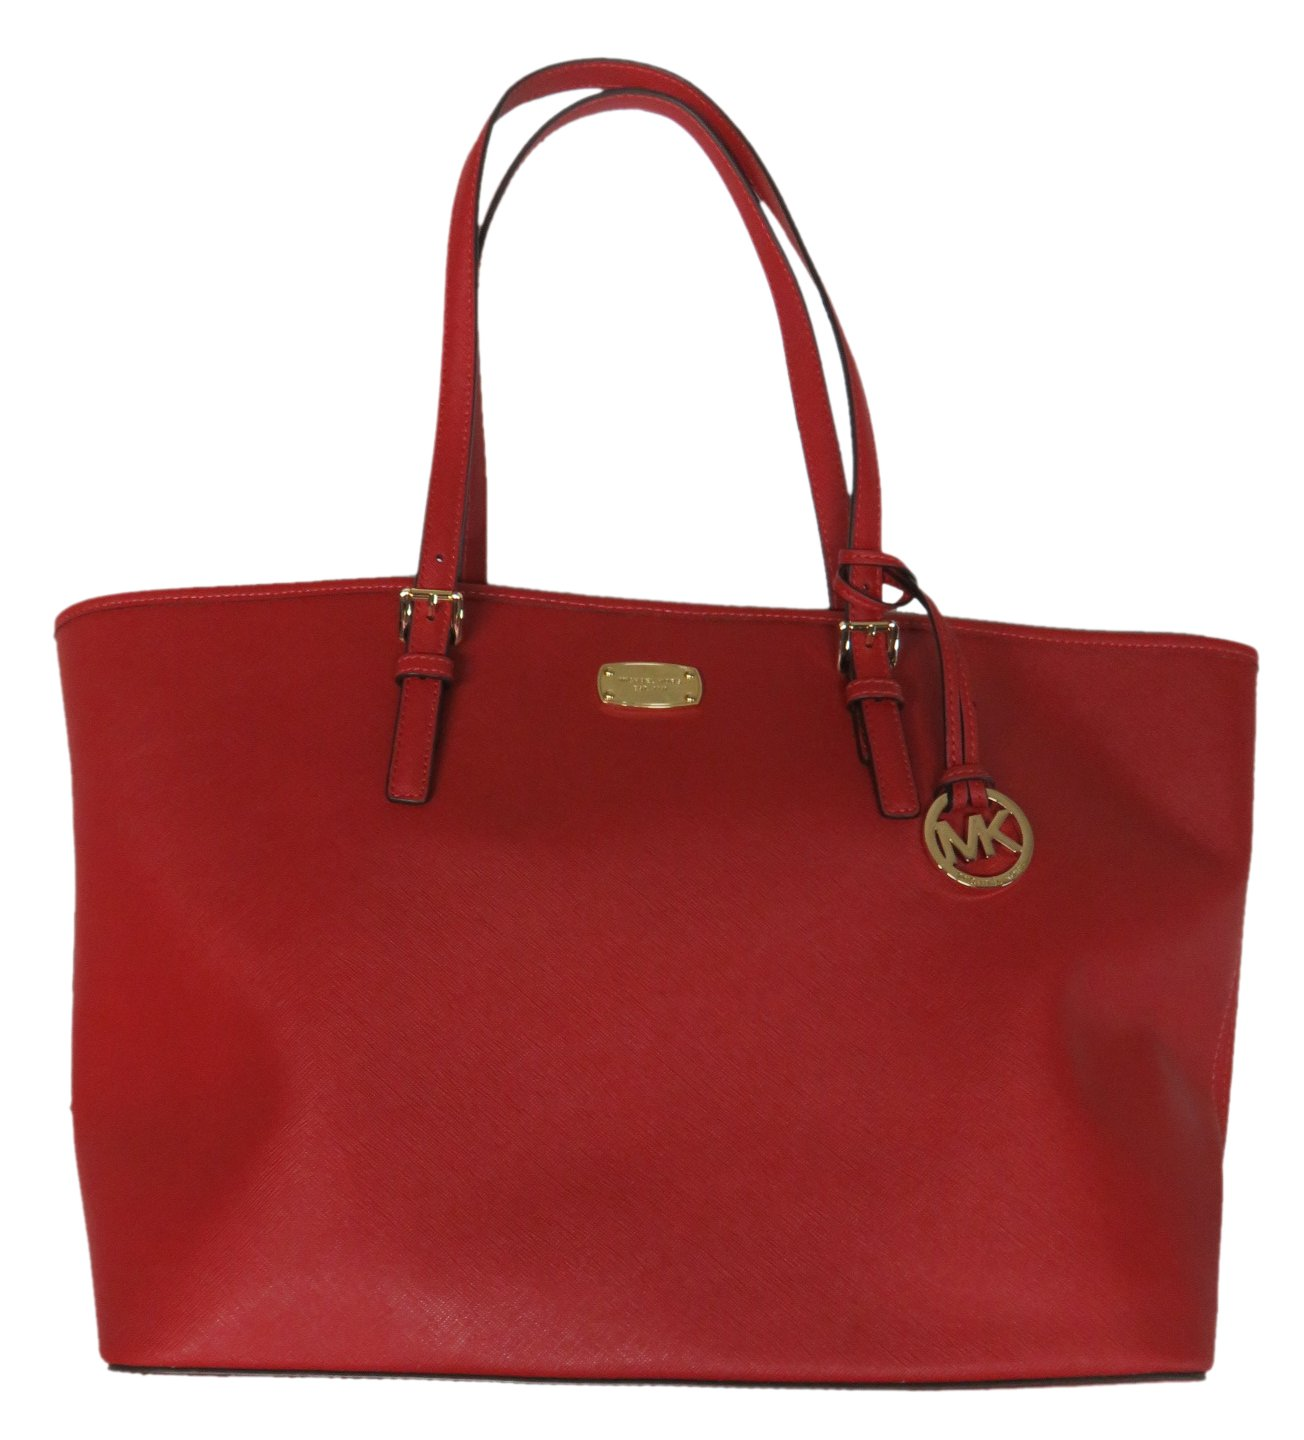 Michael Kors Leather Jet Set Large Carryall Travel Tote Red by Michael Kors